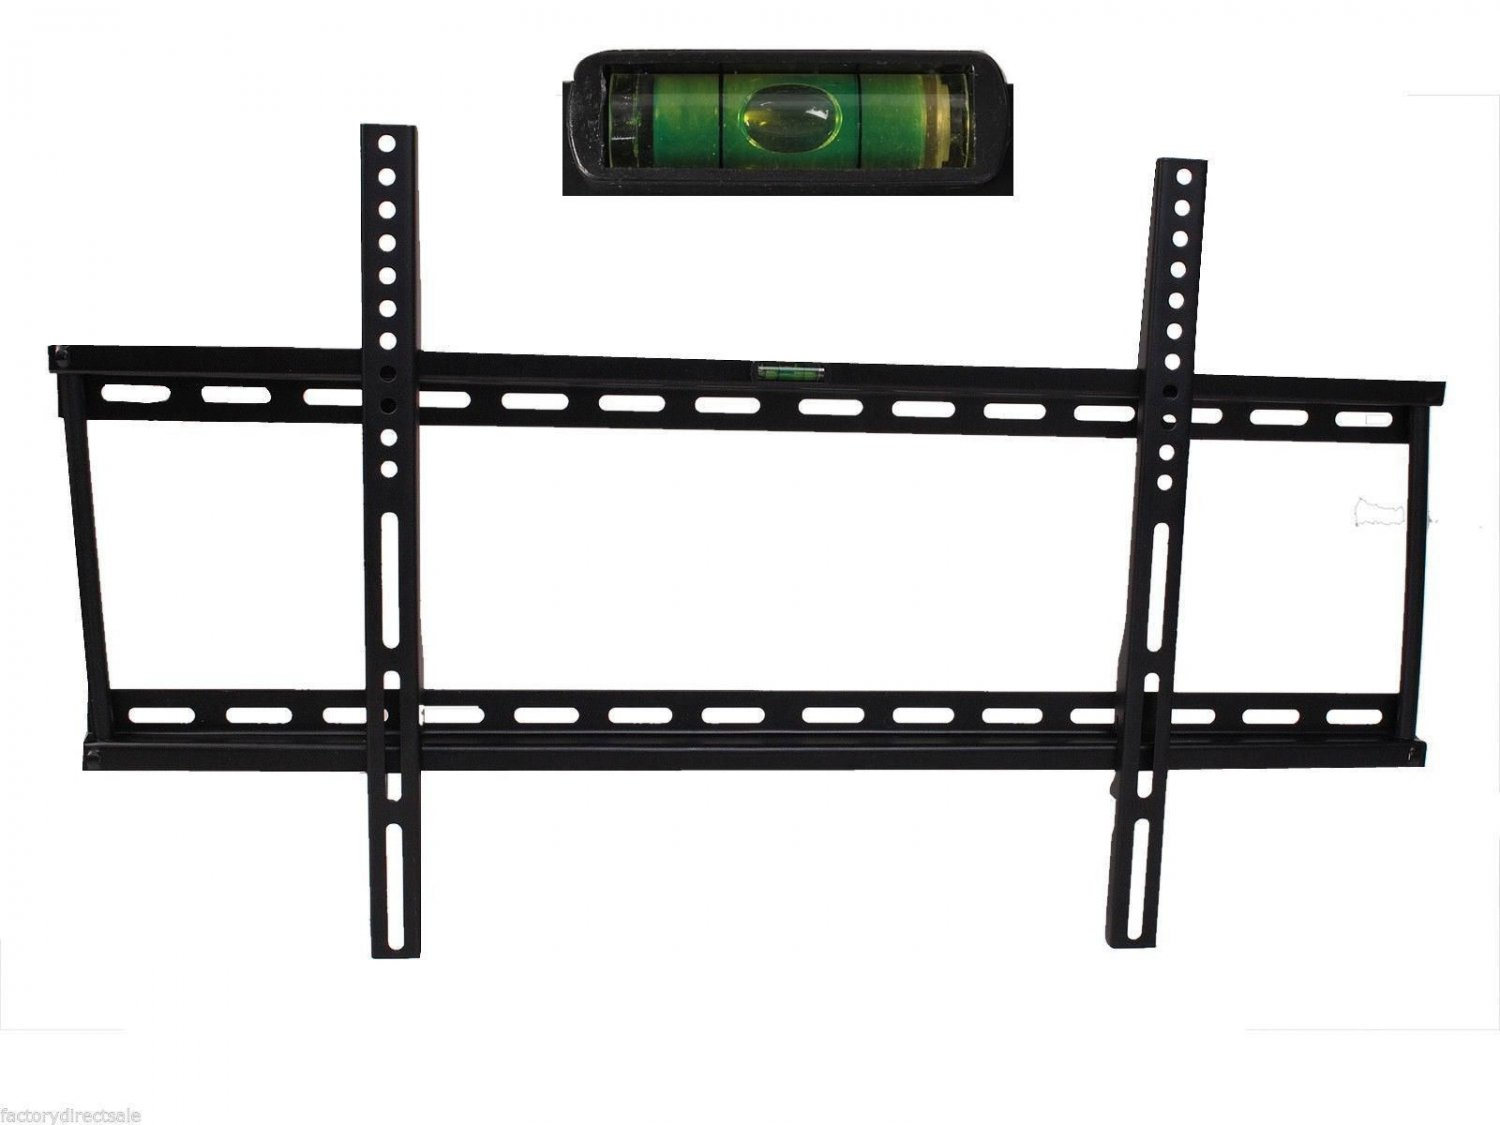 LCD LED Plasma Flat Flush TV Wall Mount Bracket 32 37 40 42 46 50 55 60 65